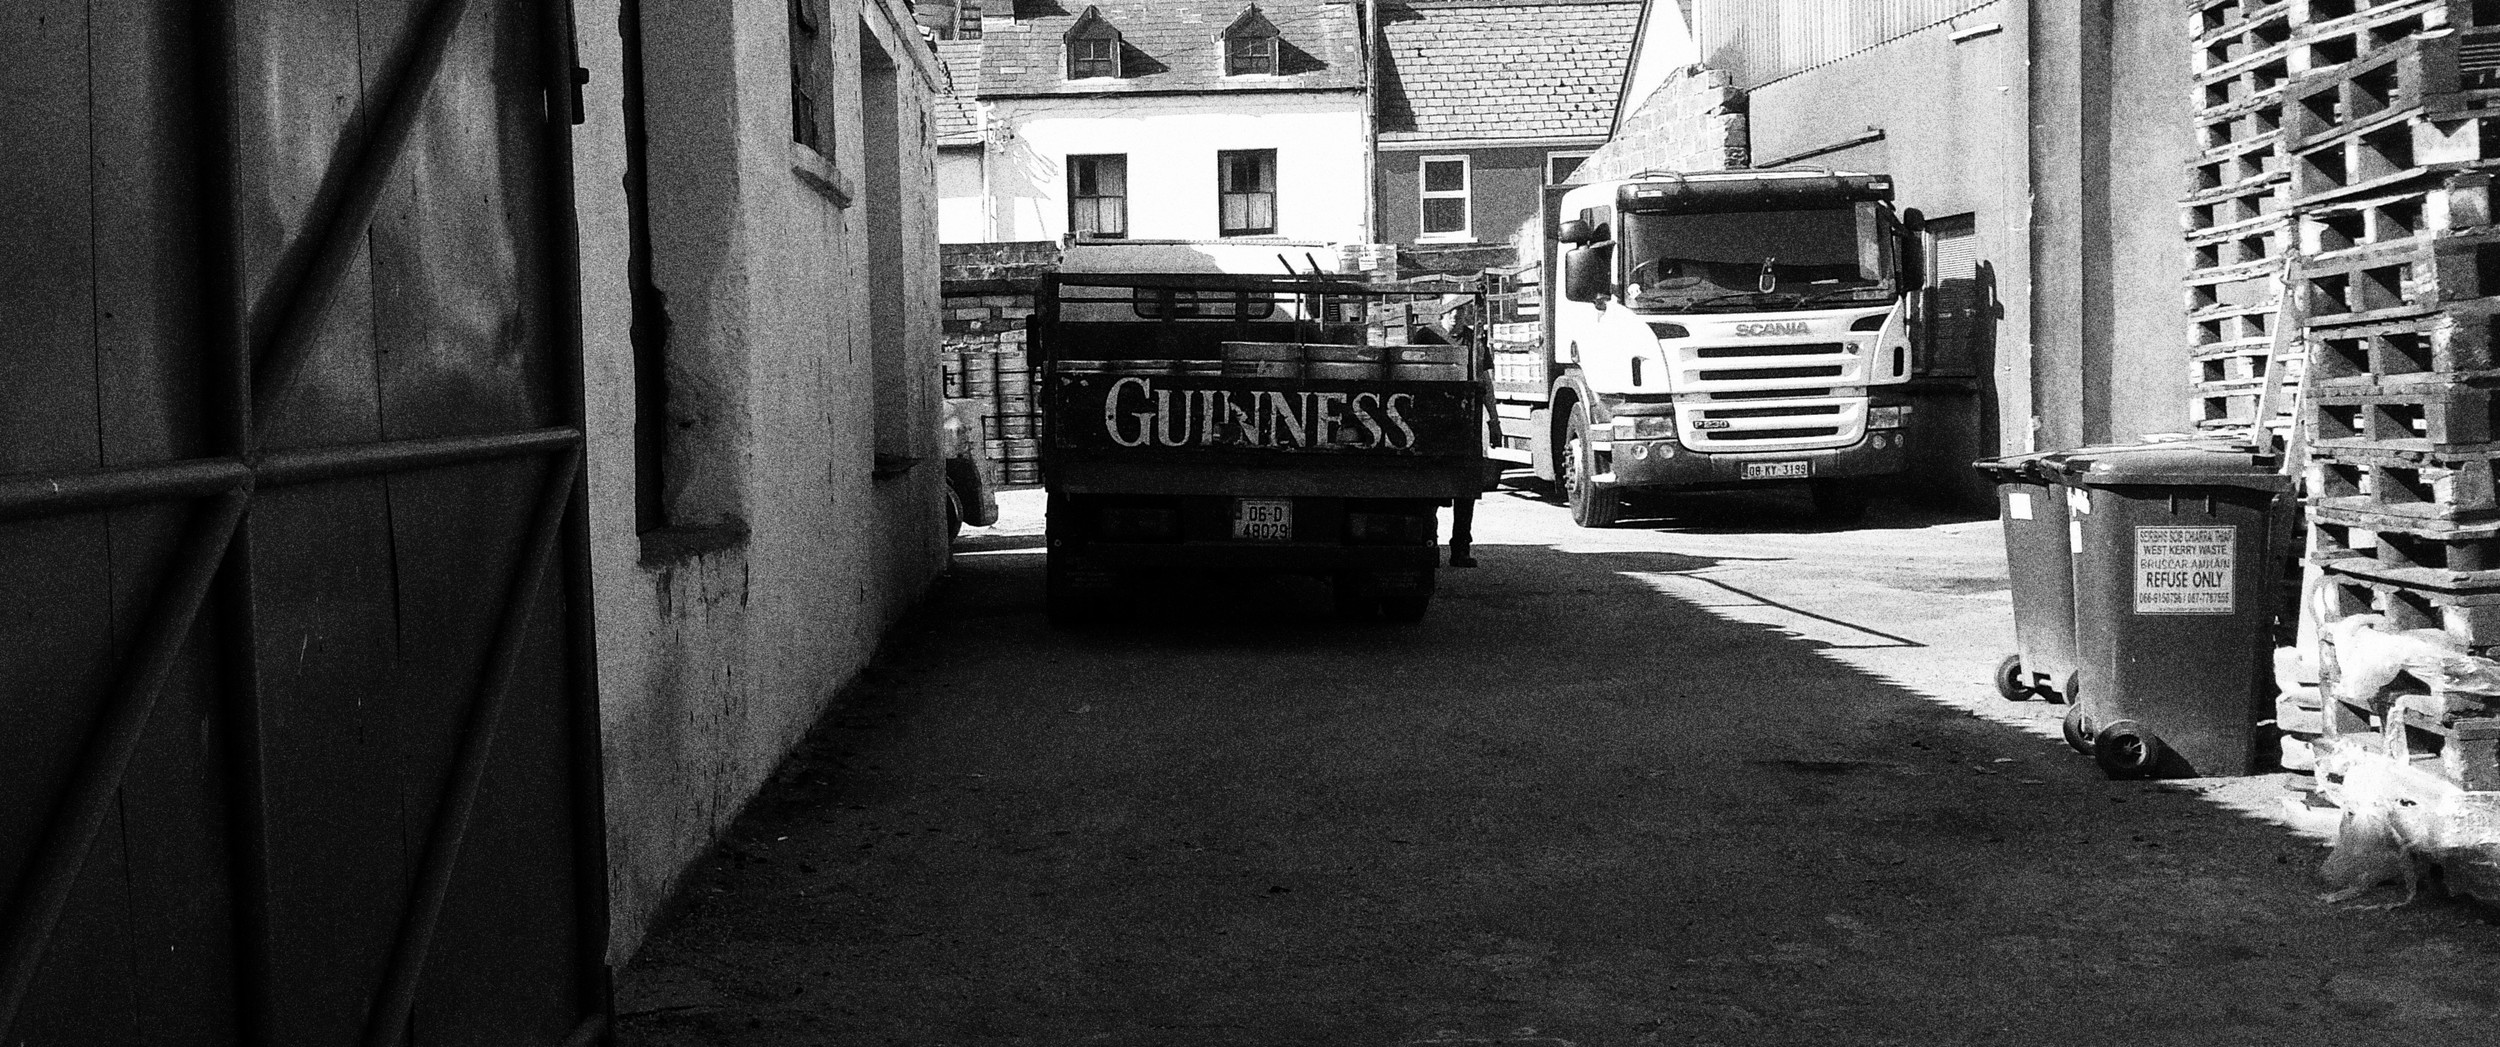 Guiness is everywhere